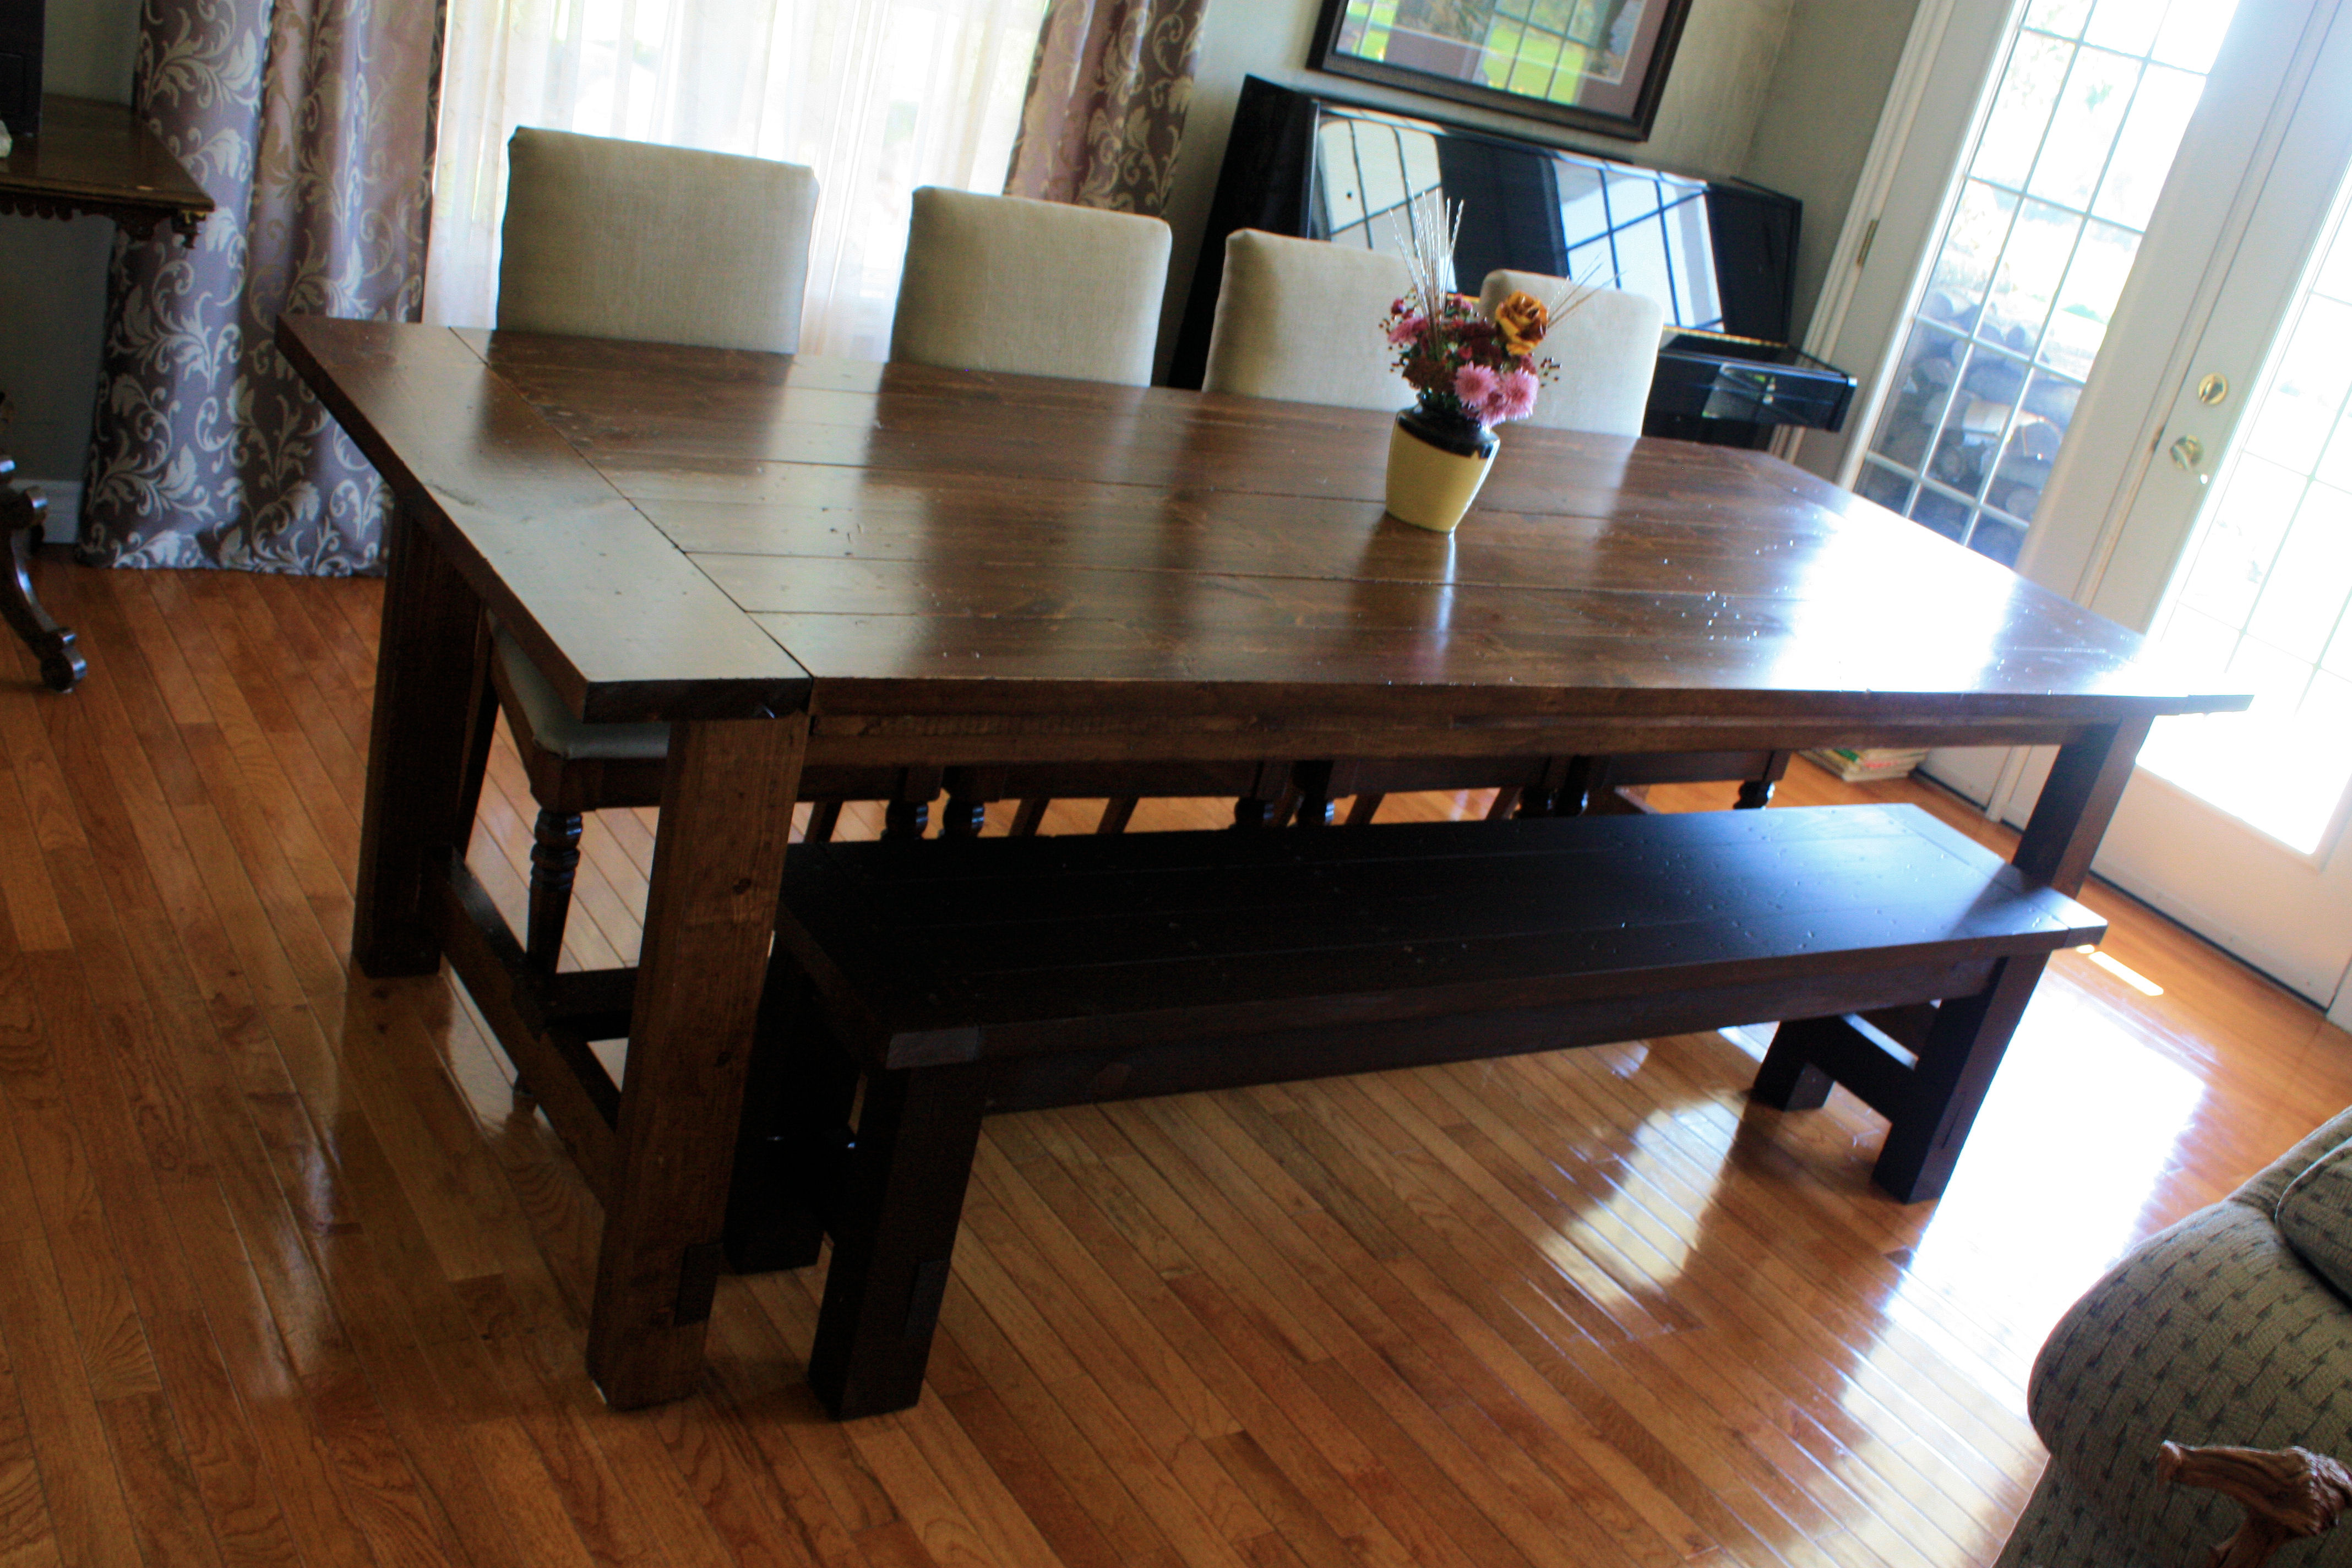 Miraculous Super Big Farmhouse Dining Table And Bench Ana White Creativecarmelina Interior Chair Design Creativecarmelinacom